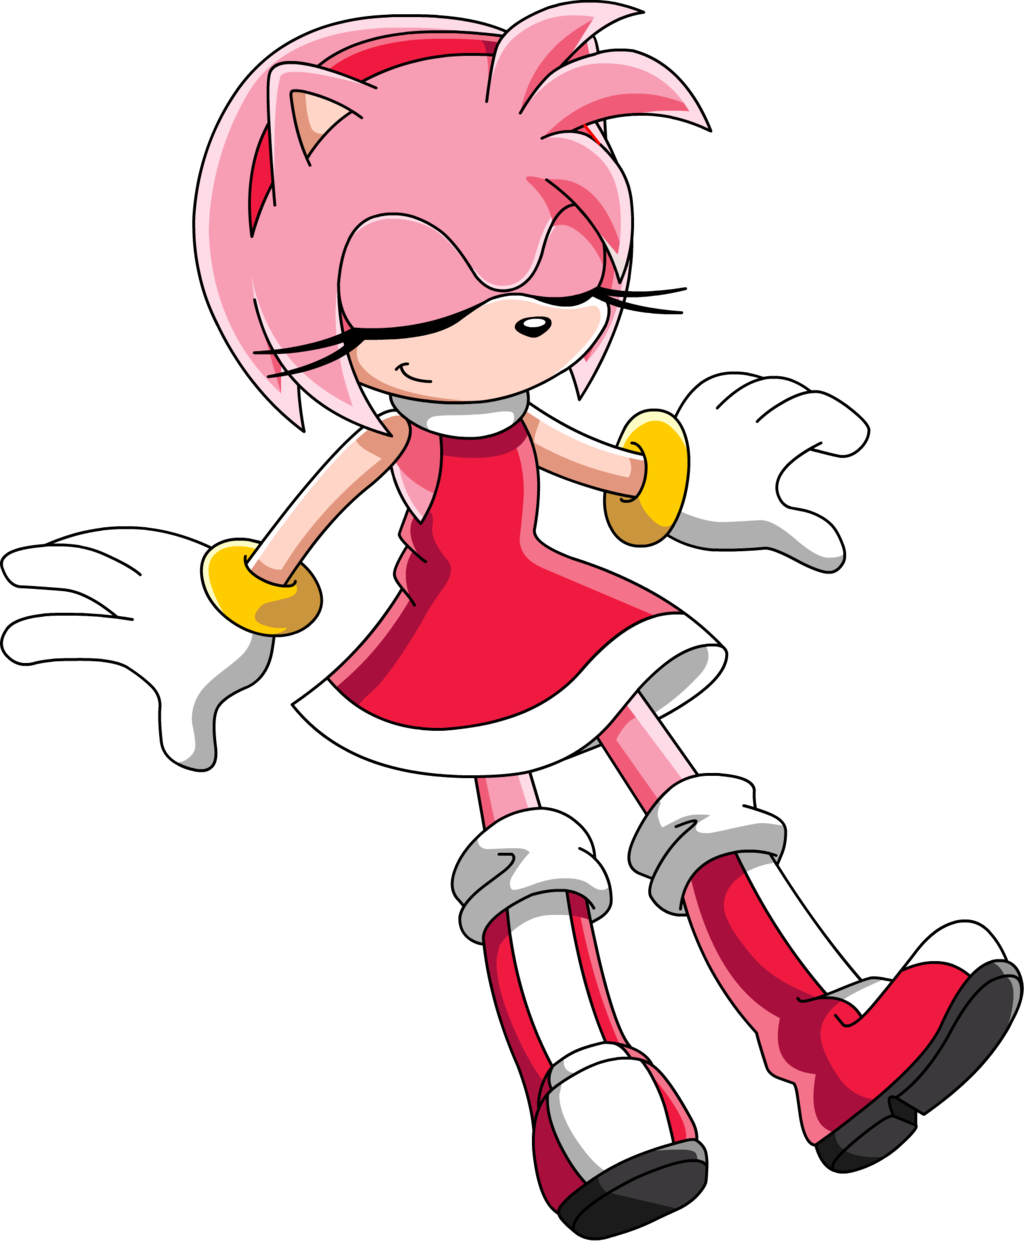 Image - Amy Rose Daydreaming.png